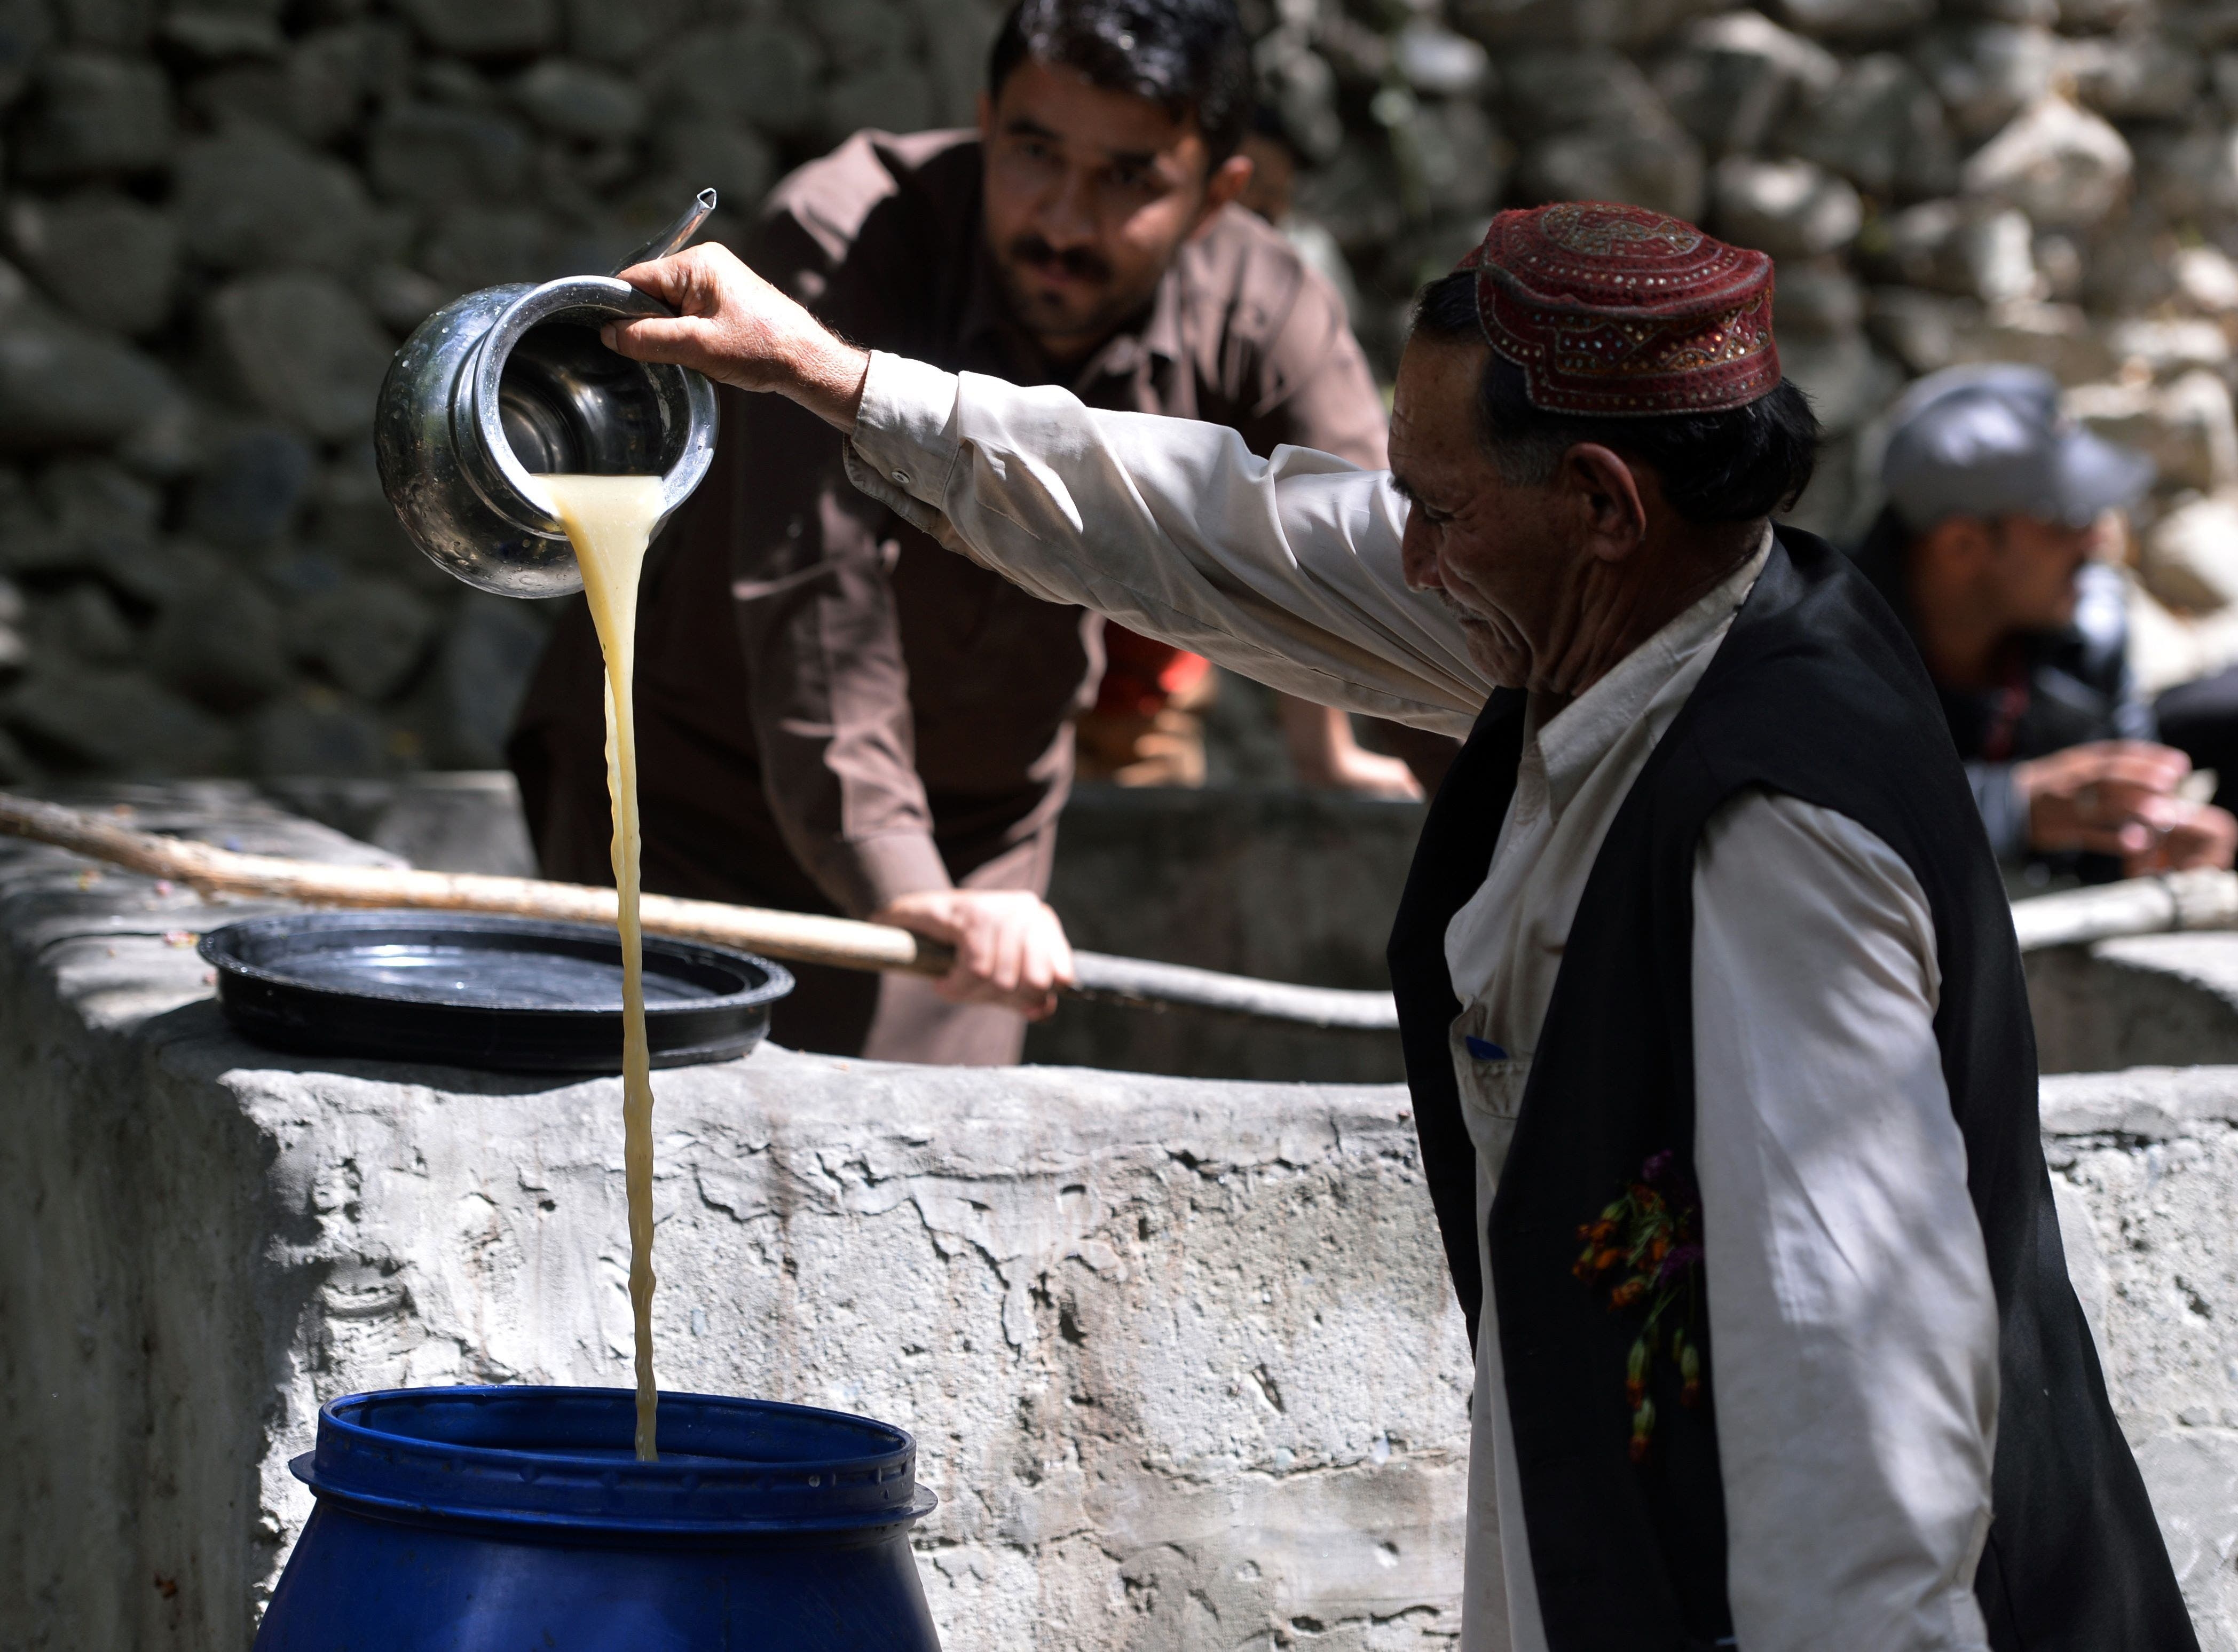 In this photograph taken on September 27, 2015, a local resident pours the juice from crushed grapes as part of a brewing wine process in a garden in the remote village of Sher Qilla in Punyal valley in northern Pakistan.